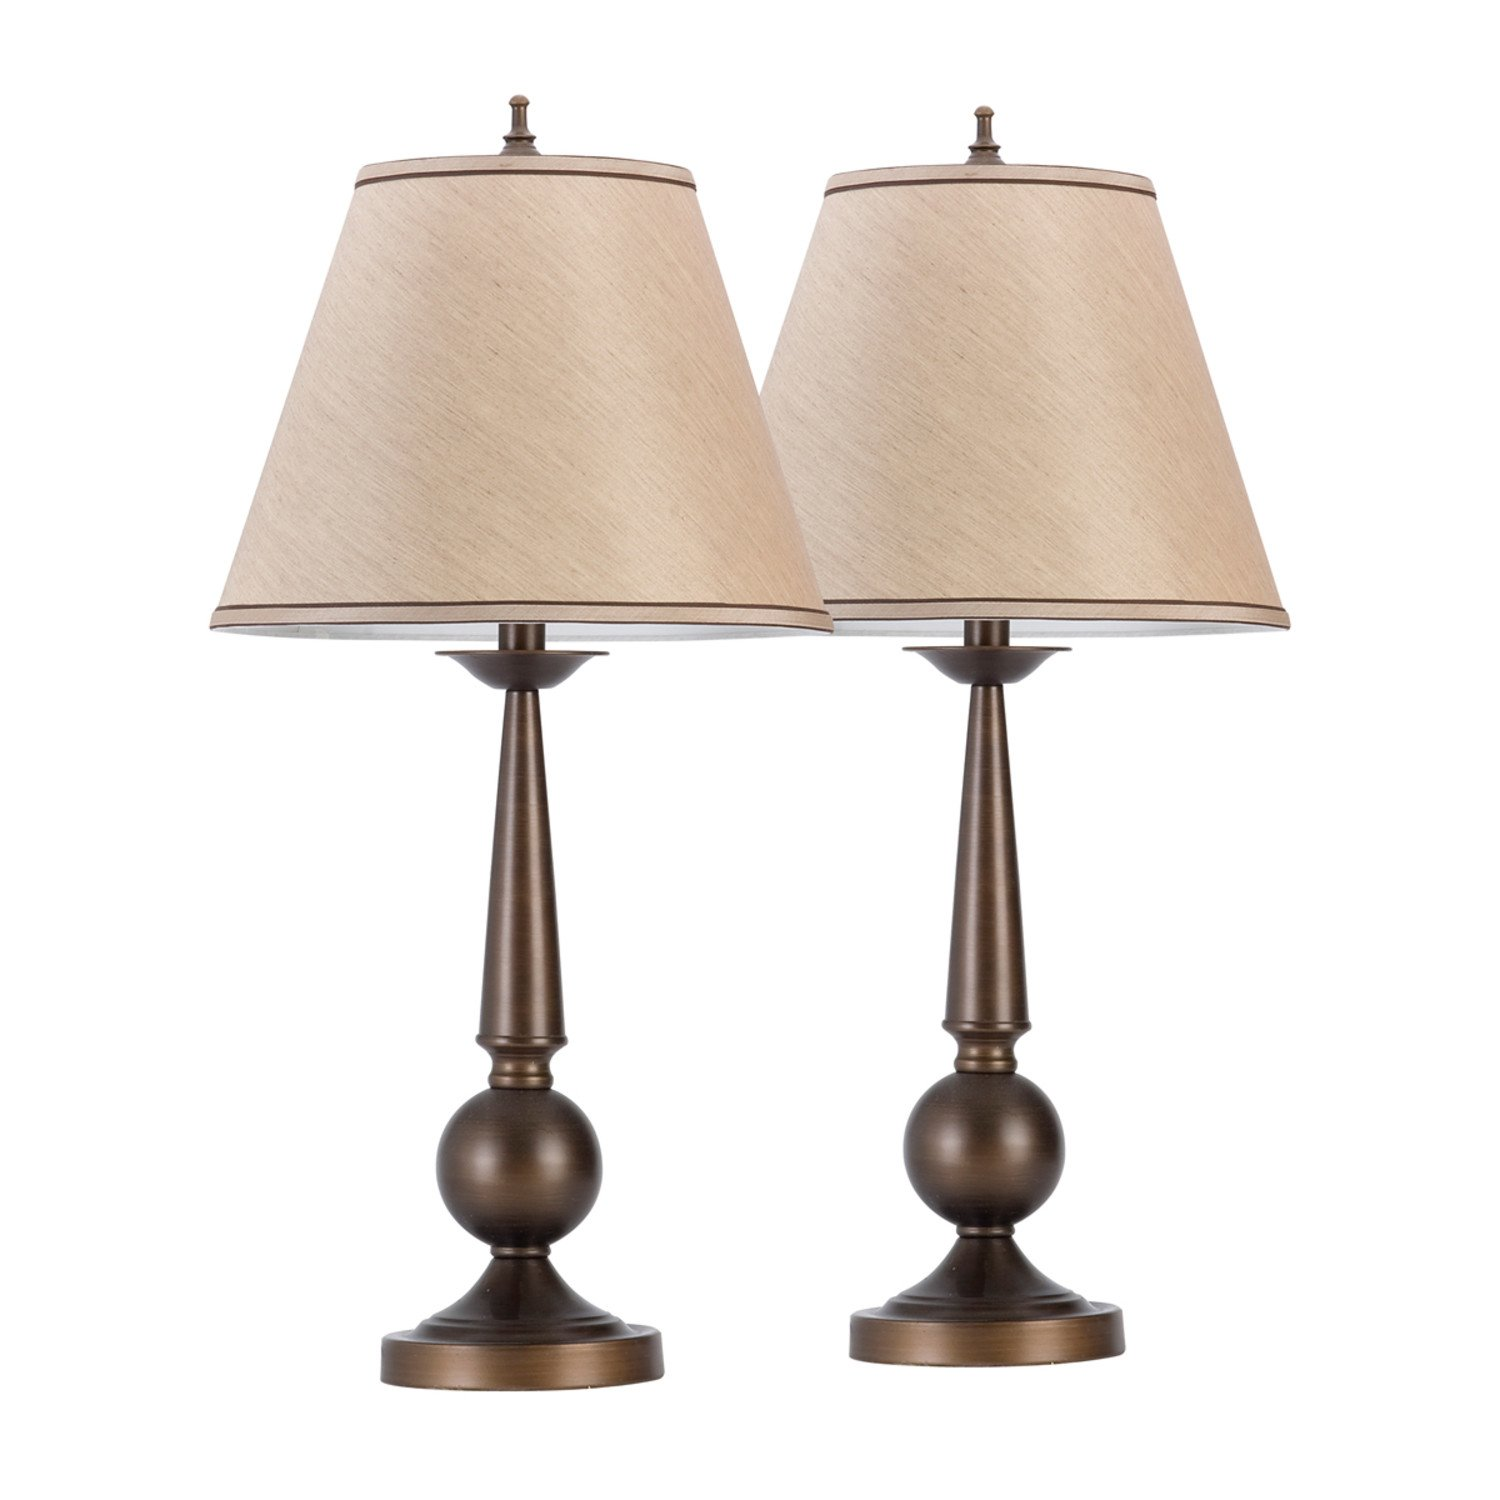 Globe Electric Set of Two 27'' Table Lamps, Bronze Finish, Beige Shades, 12398 by Globe Electric